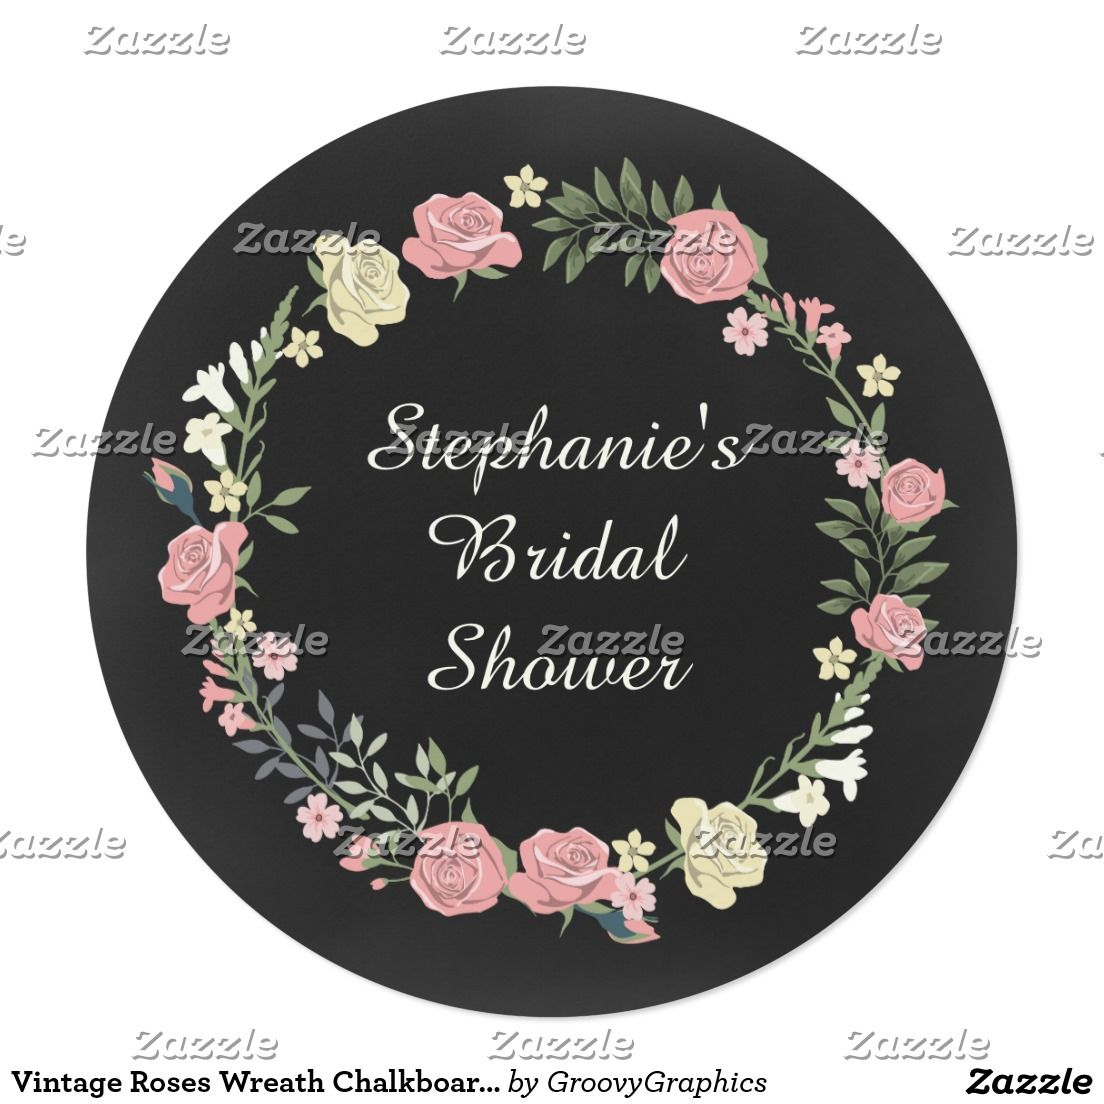 Vintage Roses Wreath Chalkboard Bridal Shower